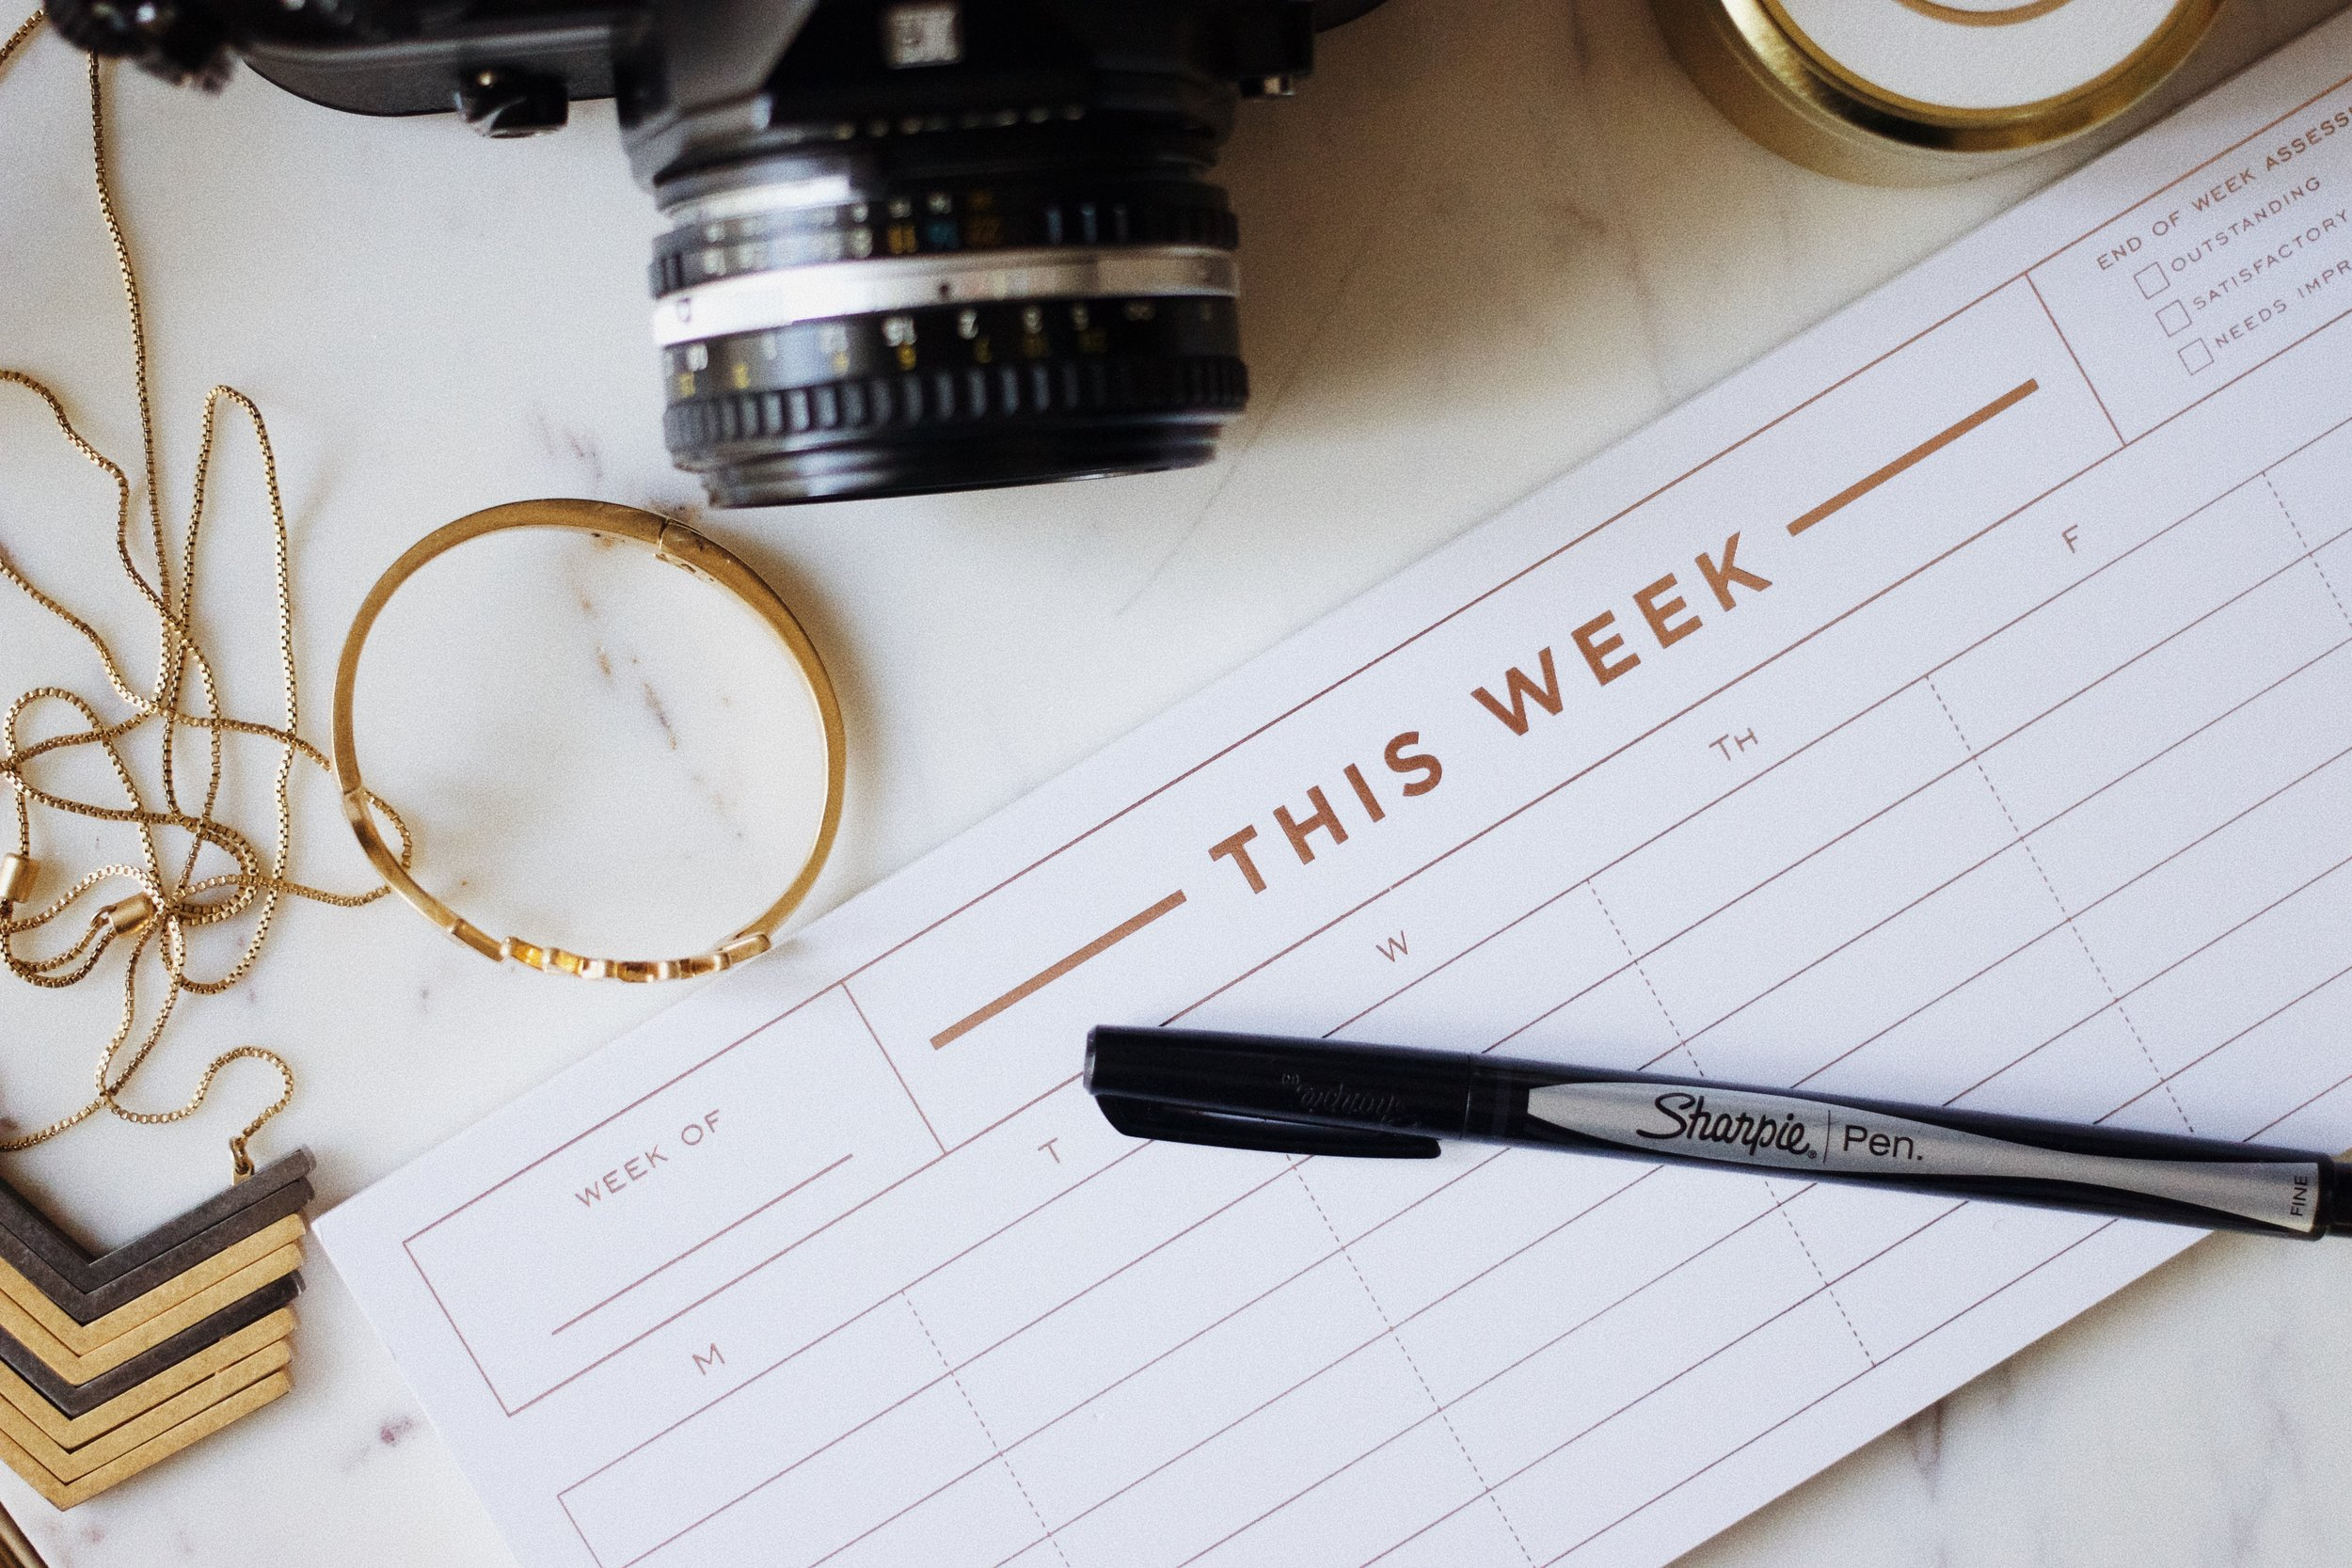 Sticking to a schedule will help you manage stress and accomplish your social media marketing goals.